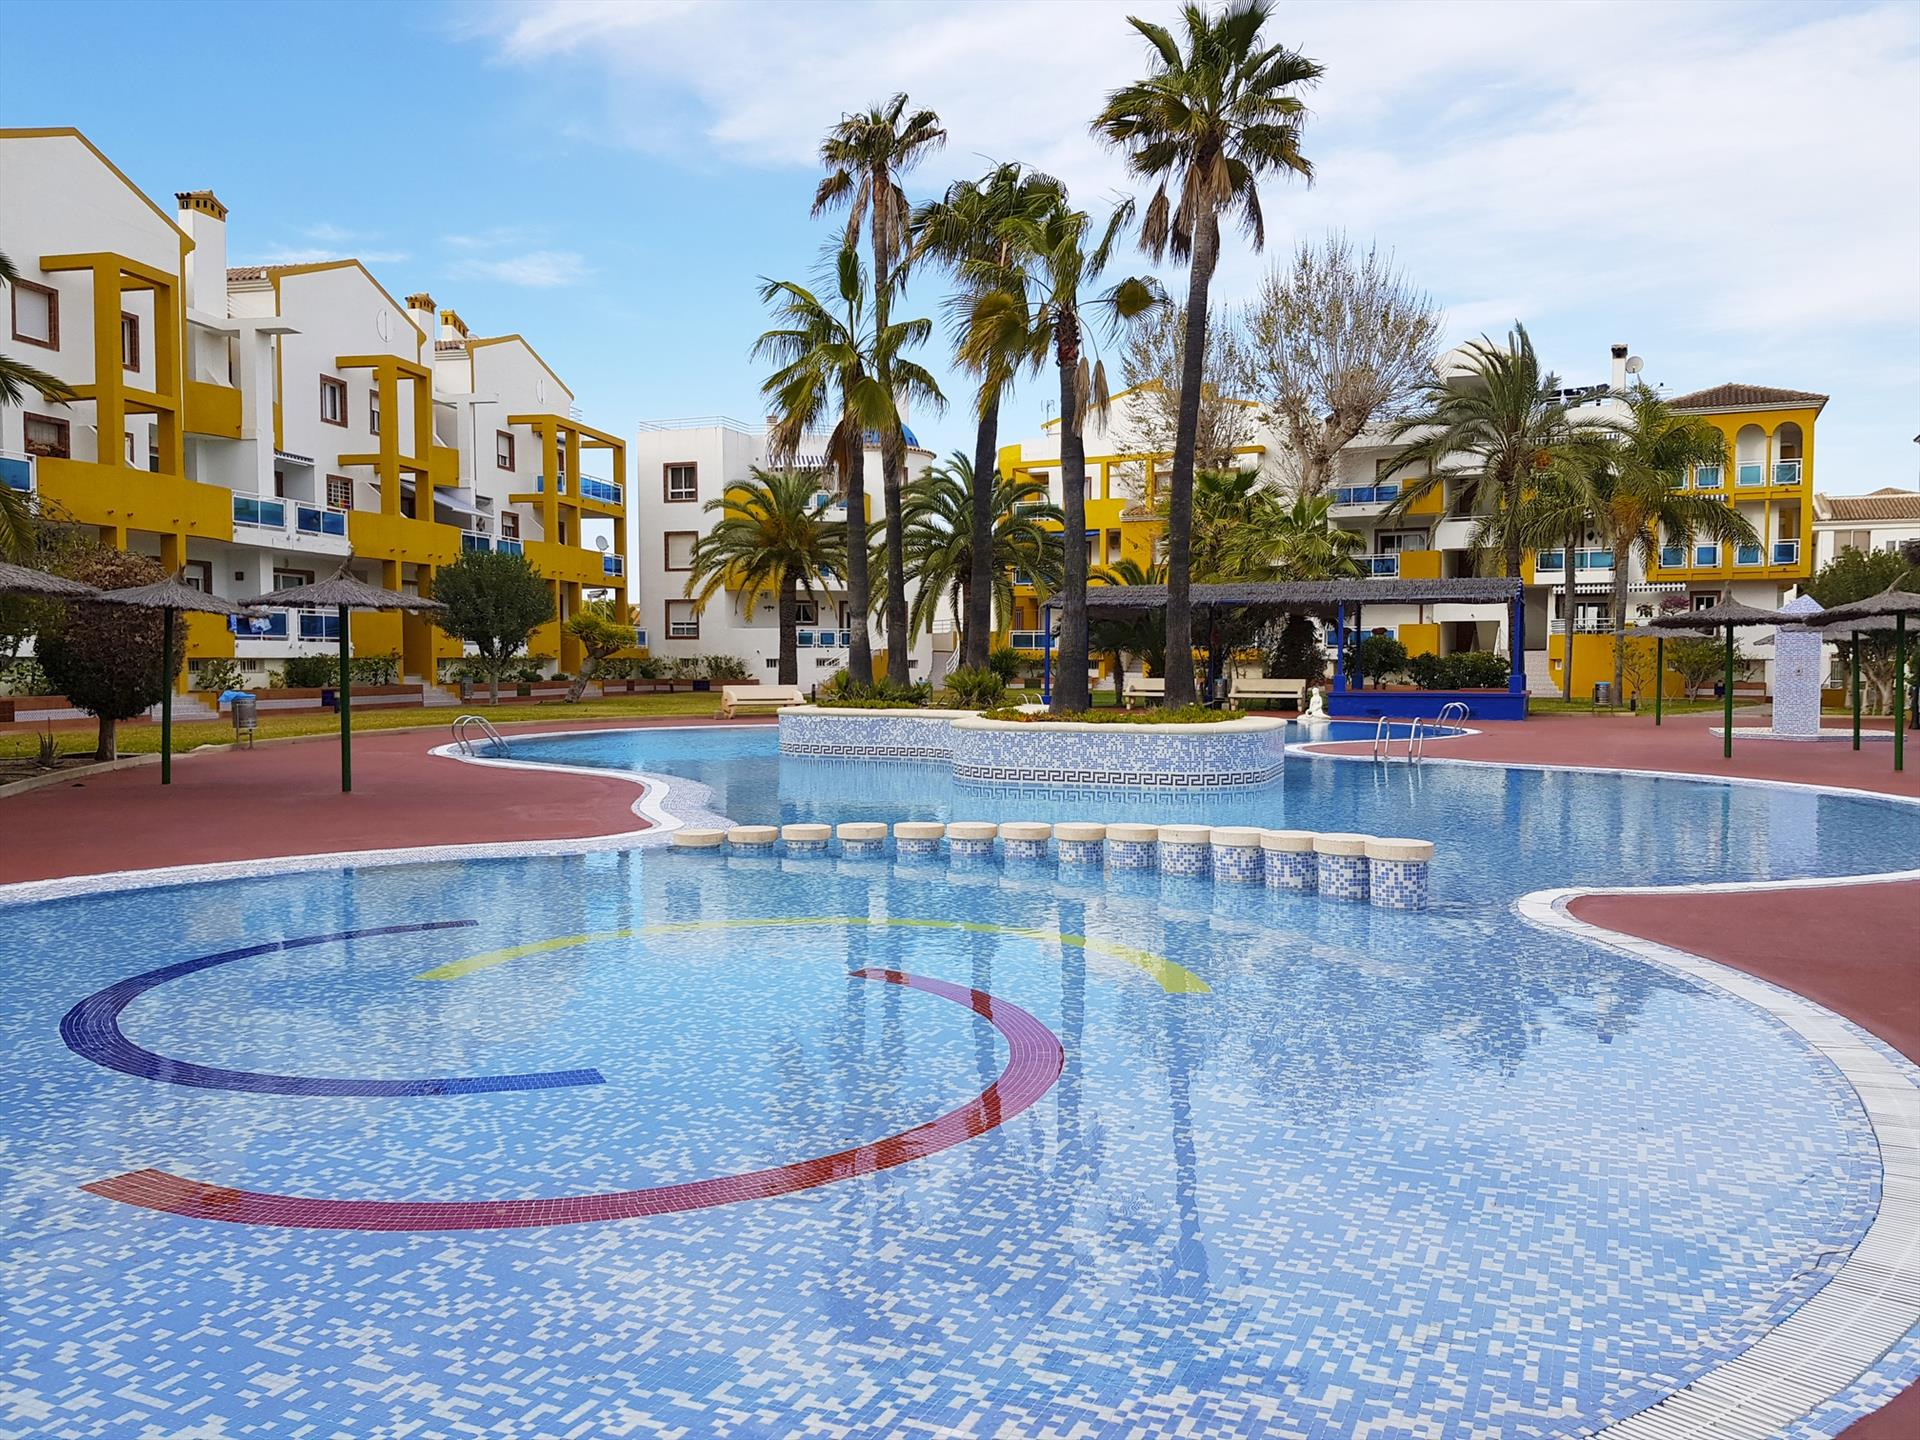 AP102 San Fernando gran terraza y jardín comunitario, Beautiful and romantic apartment in Oliva, on the Costa Blanca, Spain  with communal pool for 4 persons.....